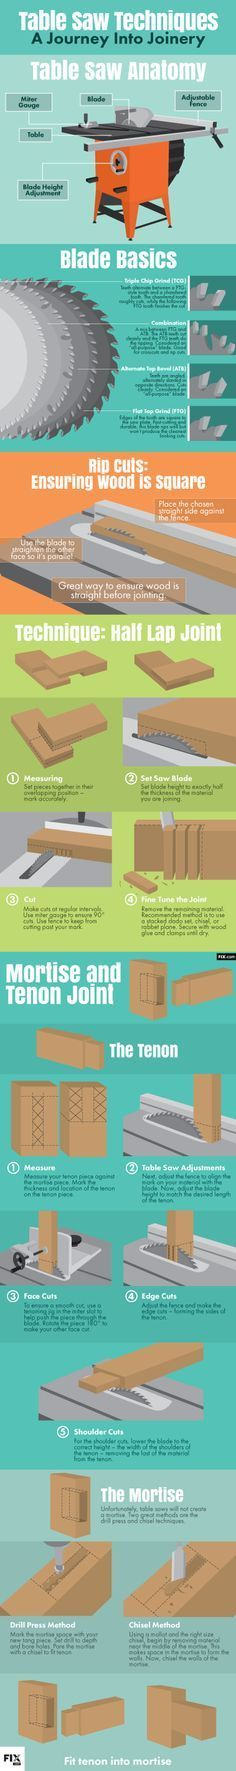 Table Saw Joinery Techniques | Fix.com